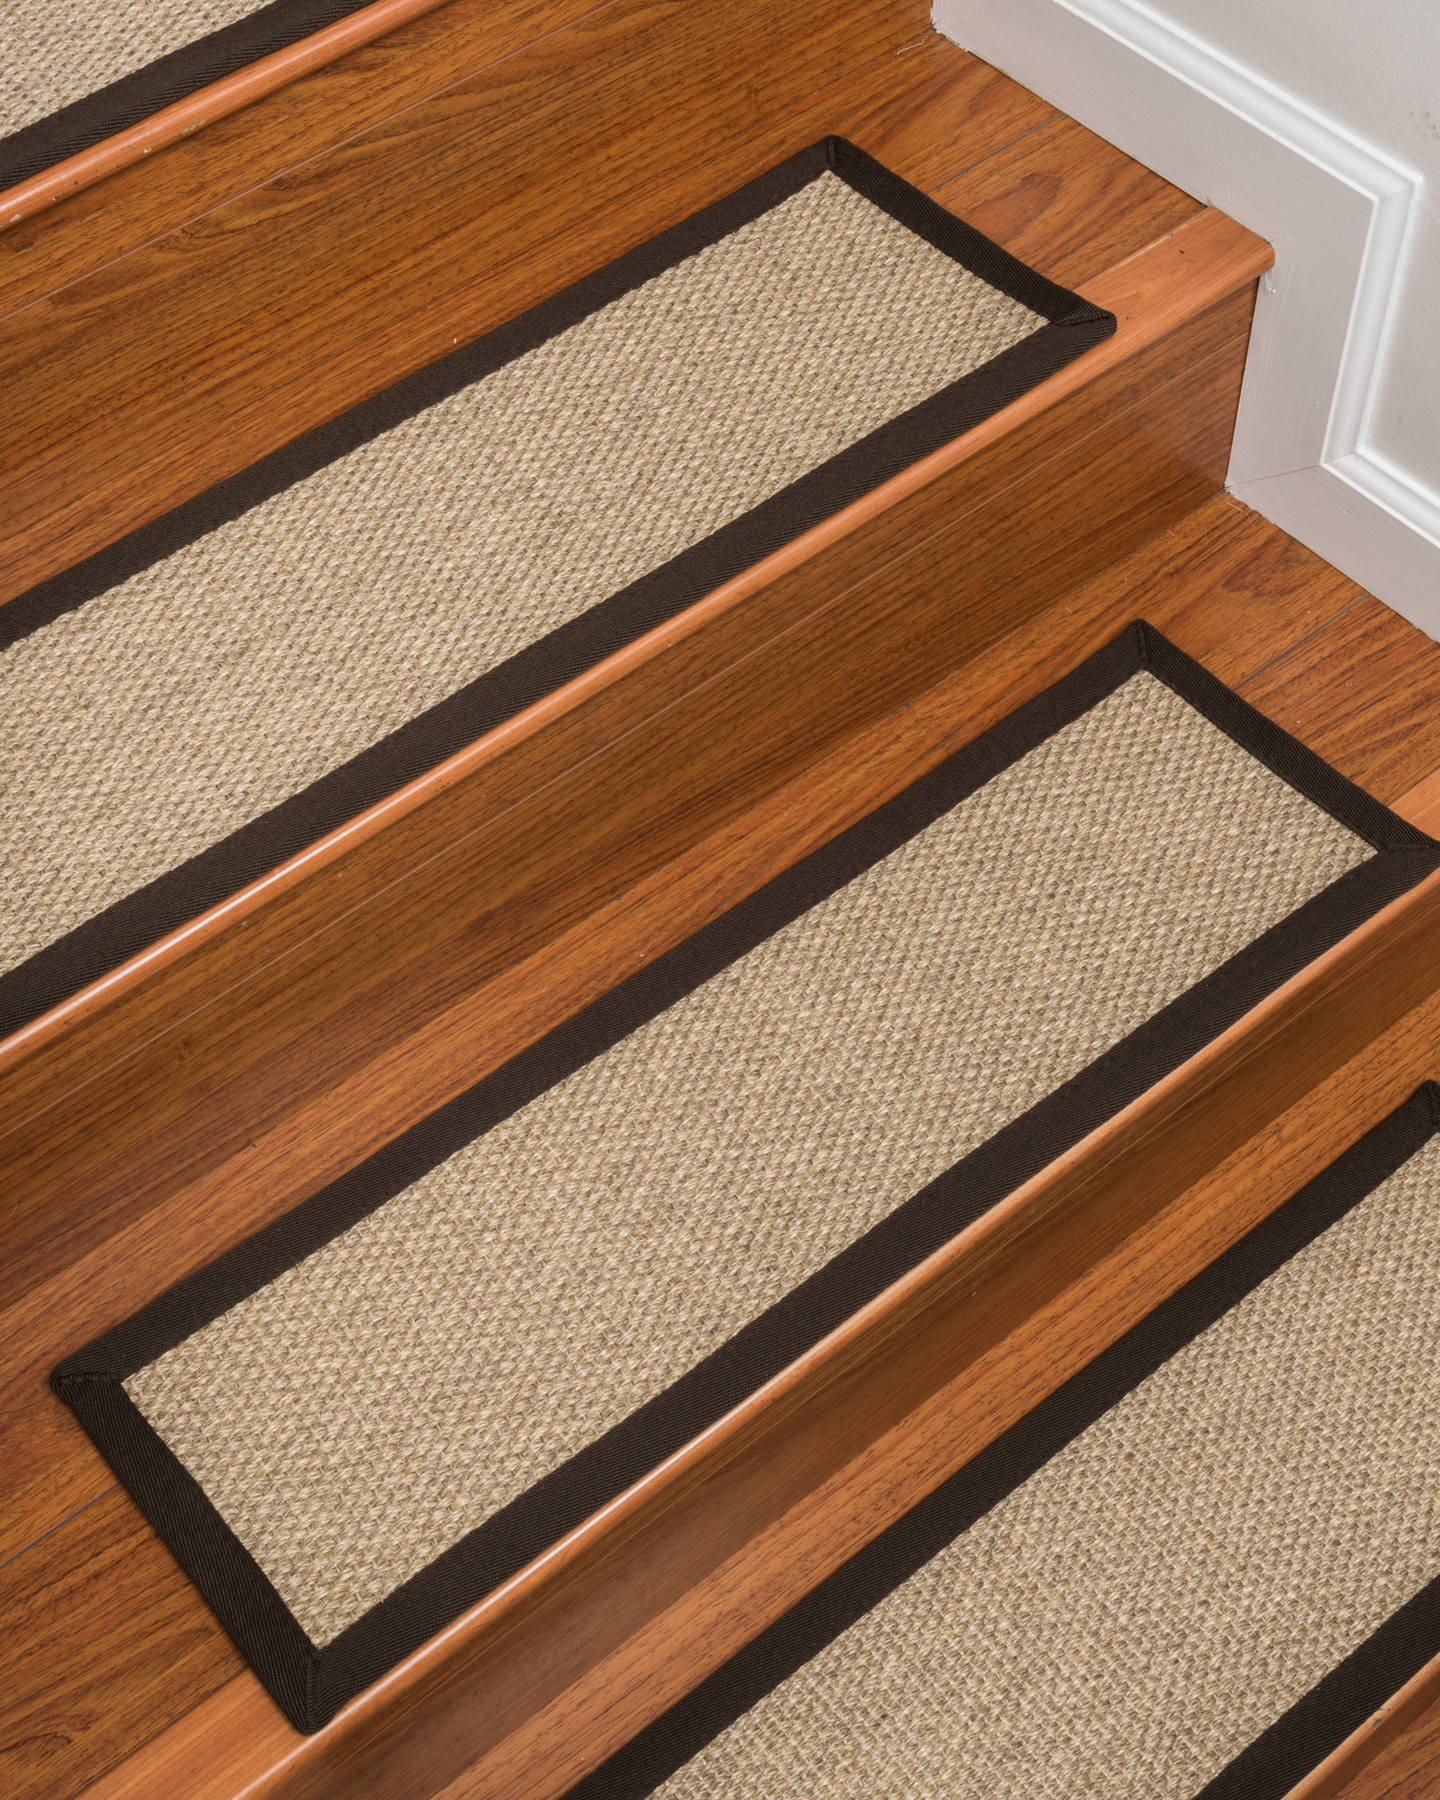 NaturalAreaRugs Edmond Sisal Carpet Stair Treads, Durable Stain Resistant  Non Slip Latex Backing (